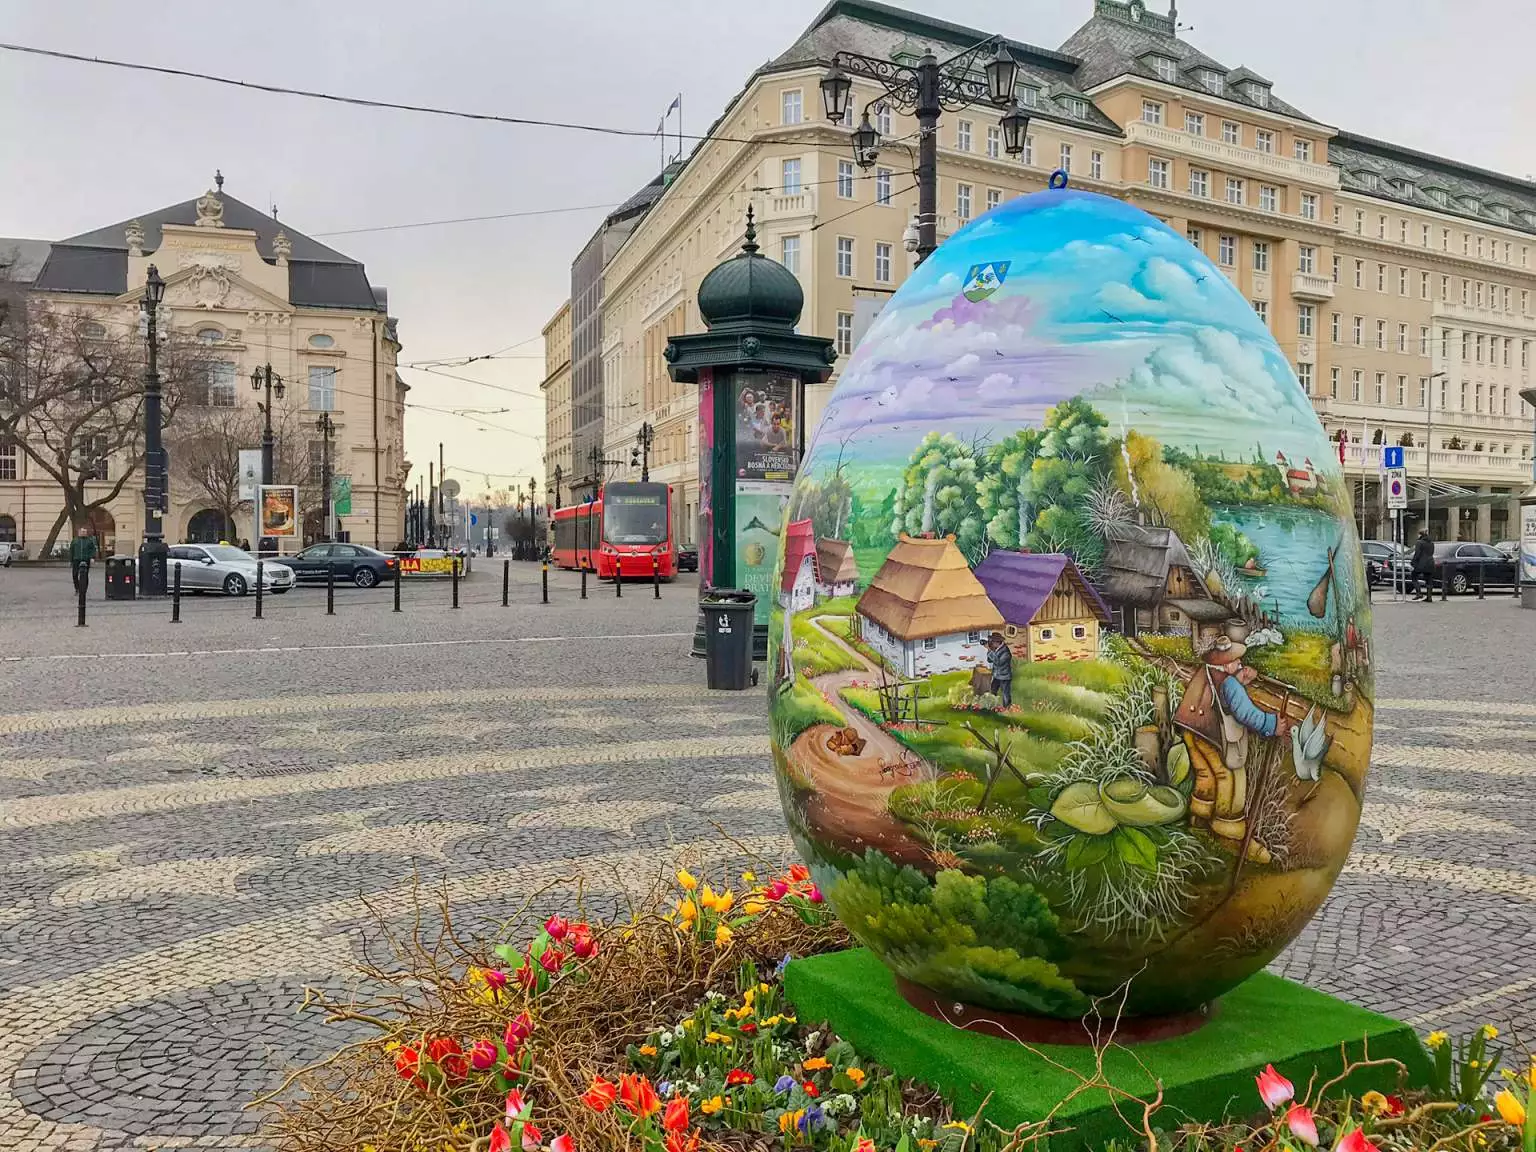 In the Centre of Košice we will have soon a two meter high Easter Egg from Croatia